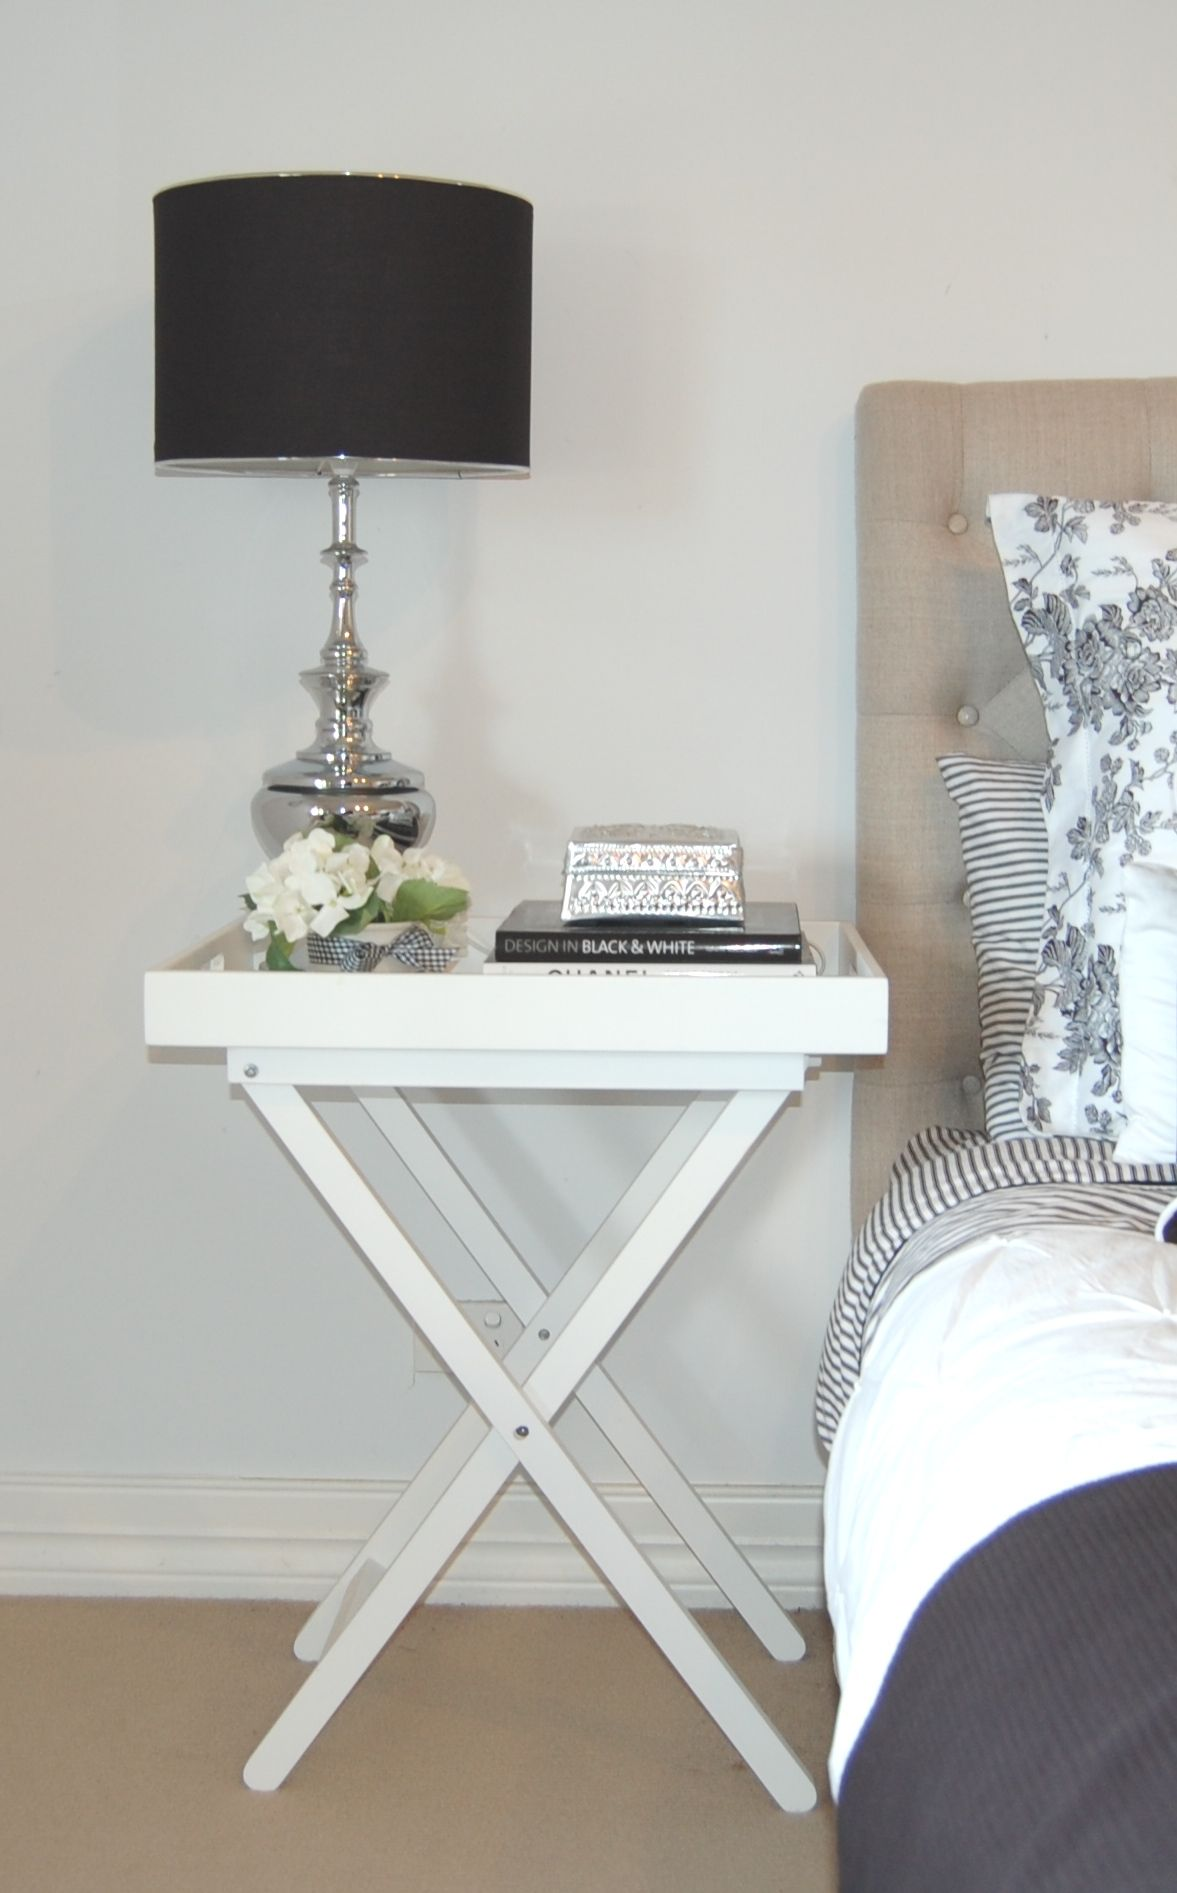 Bandejas Decoracion Salon White Butlers Tray Table Perfect As A Bedside Cosas